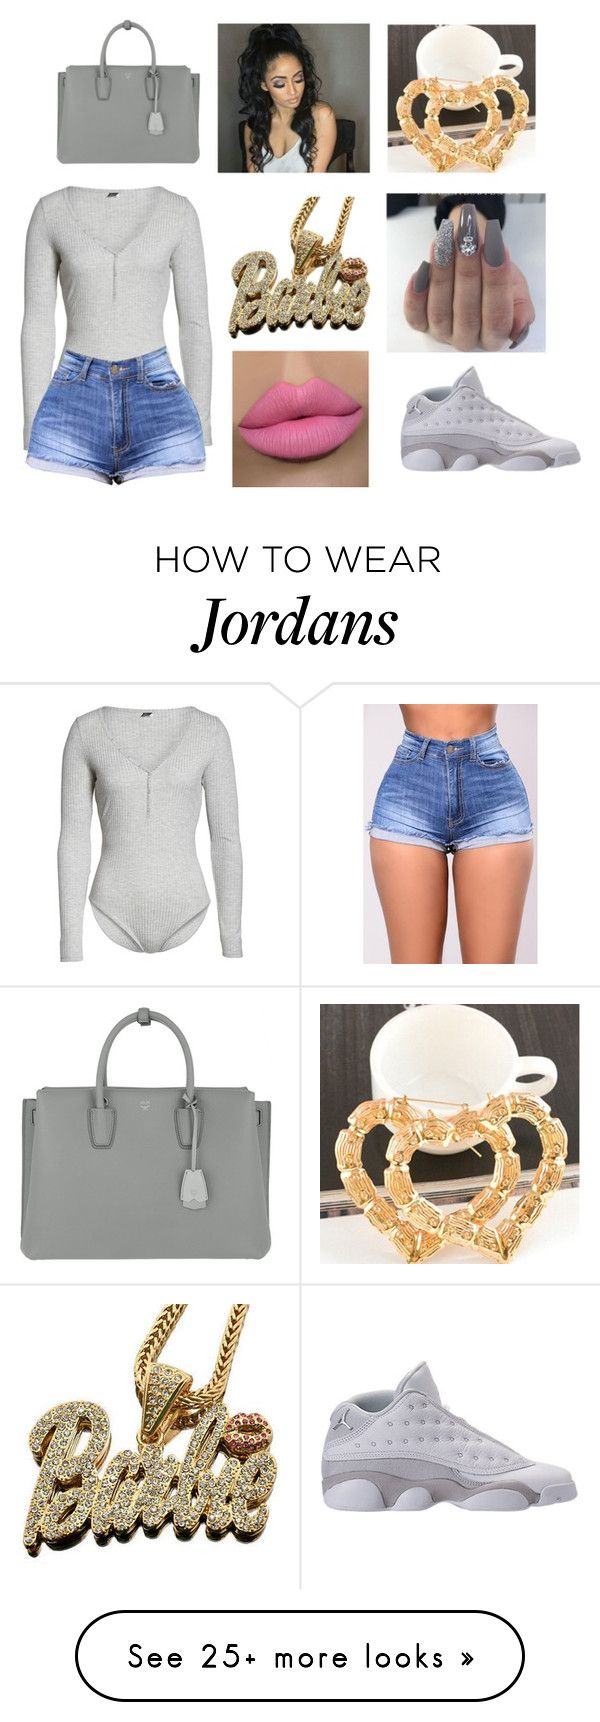 """Today"" by princeton20181 on Polyvore featuring Felina, Nicki Minaj and MCM"